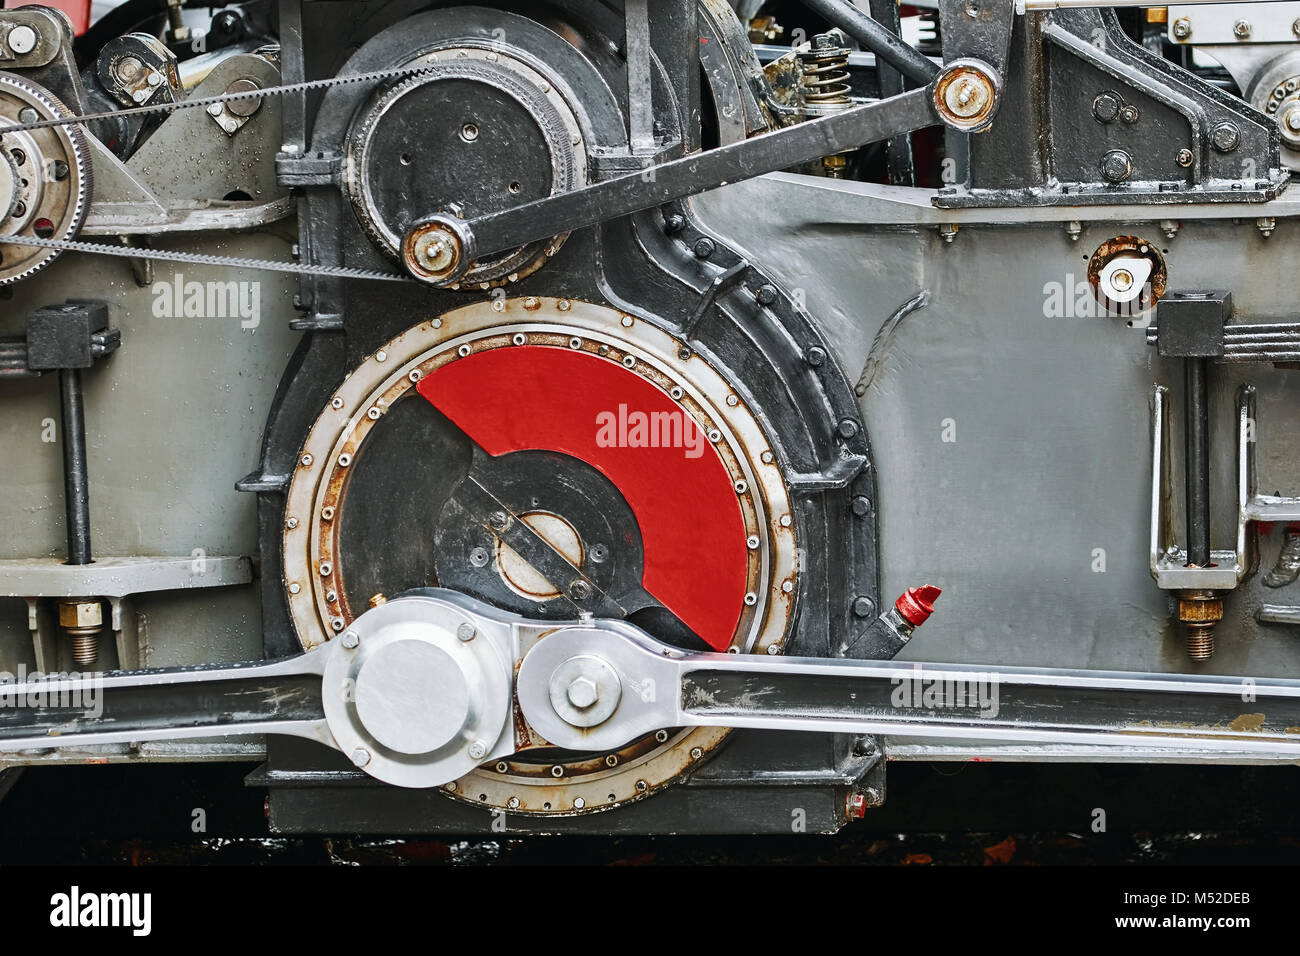 Reduction Gearing Part of Locomotive - Stock Image